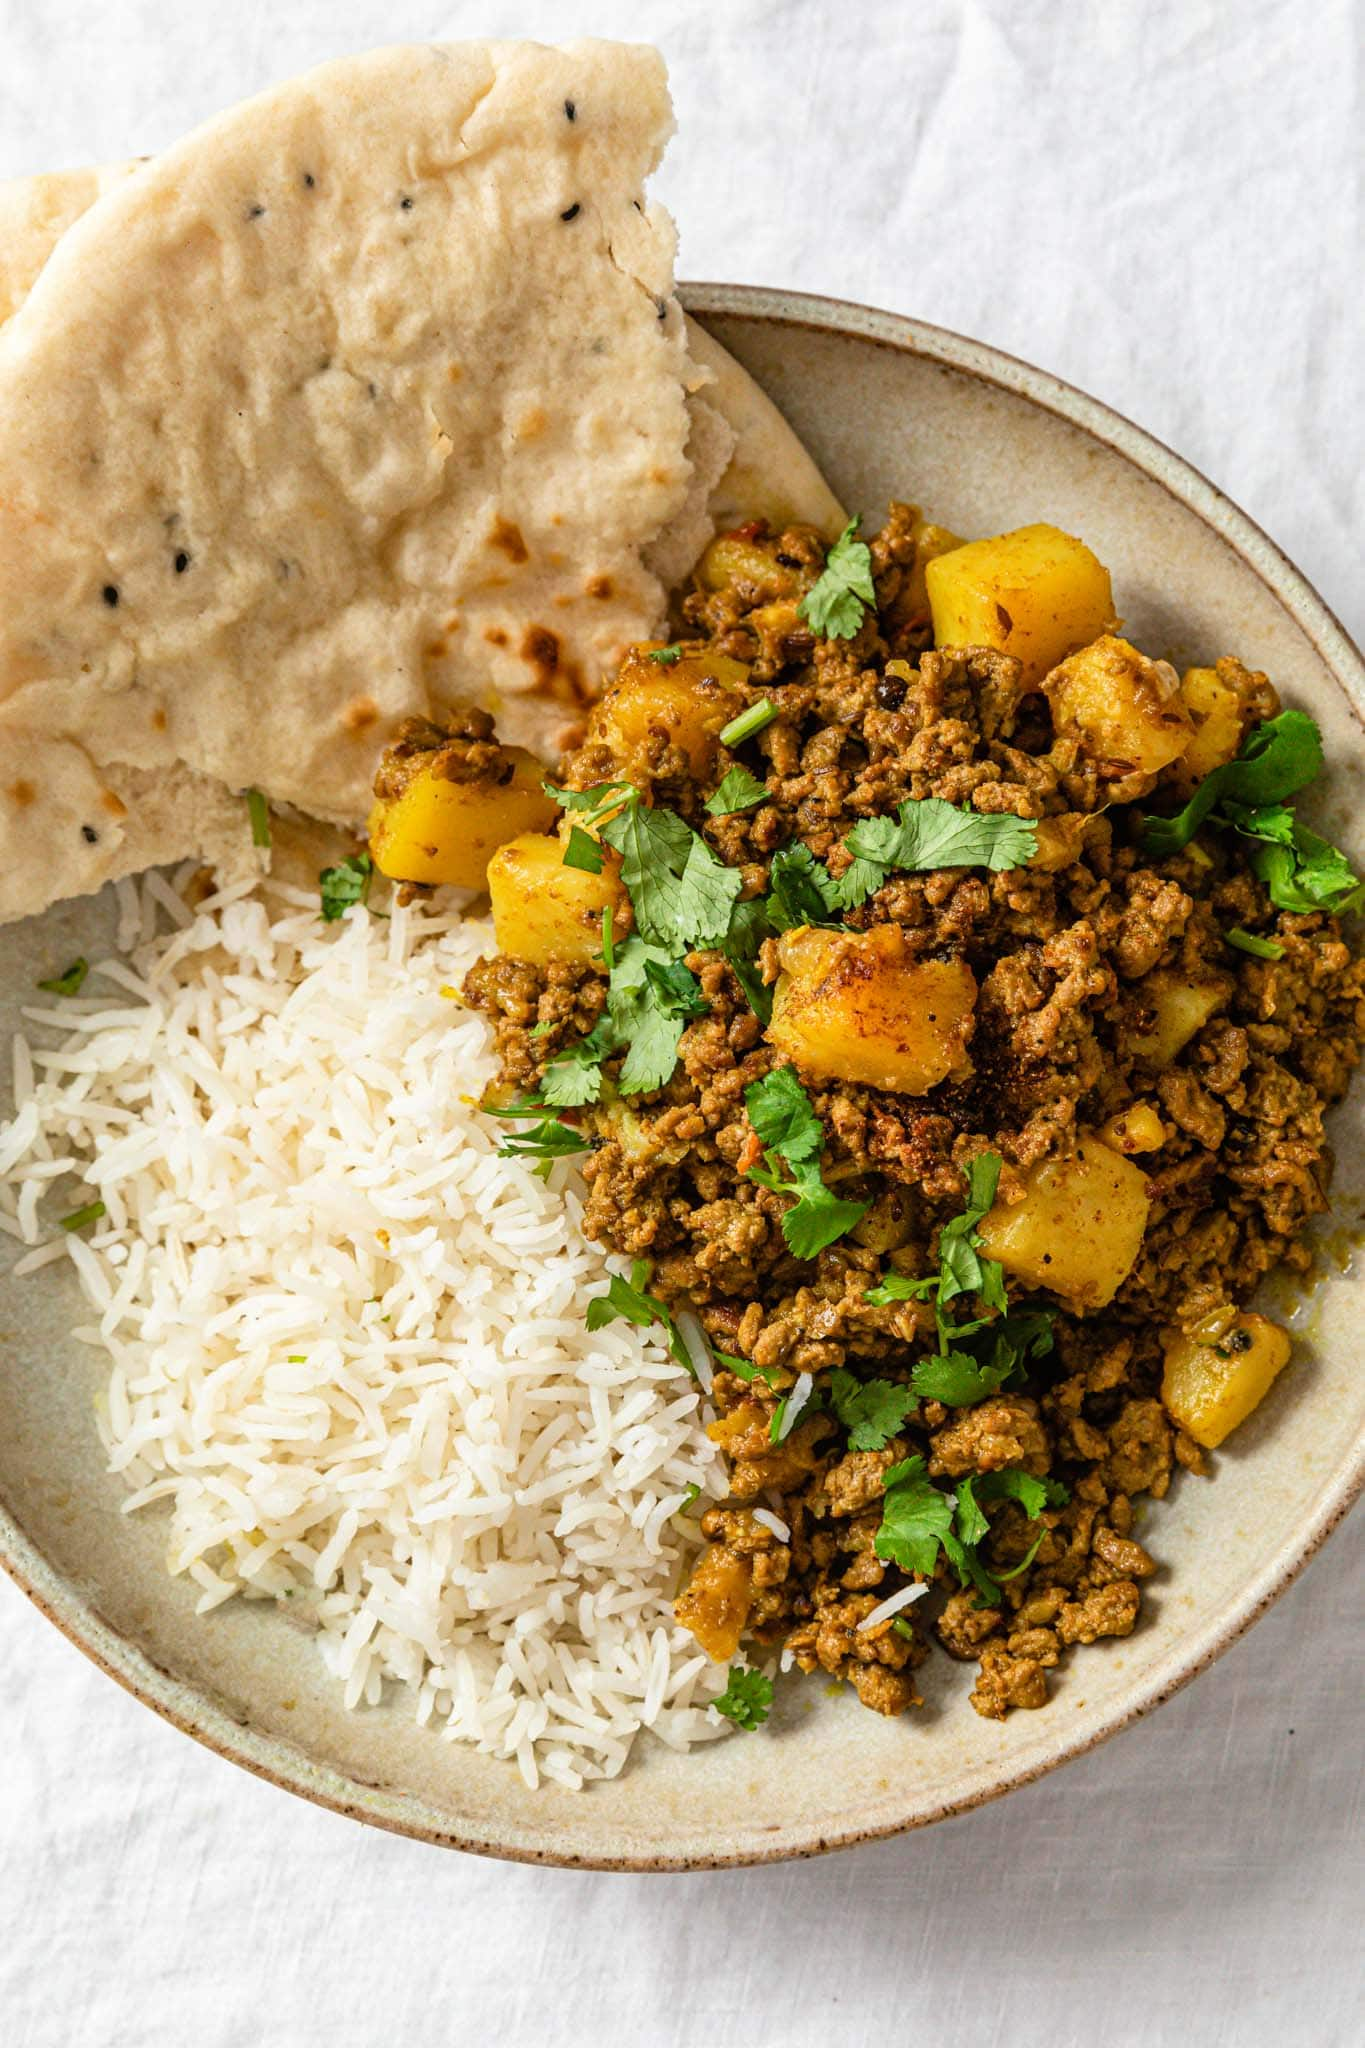 Ground beef and potato curry in a beige bowl with basmati rice and naan